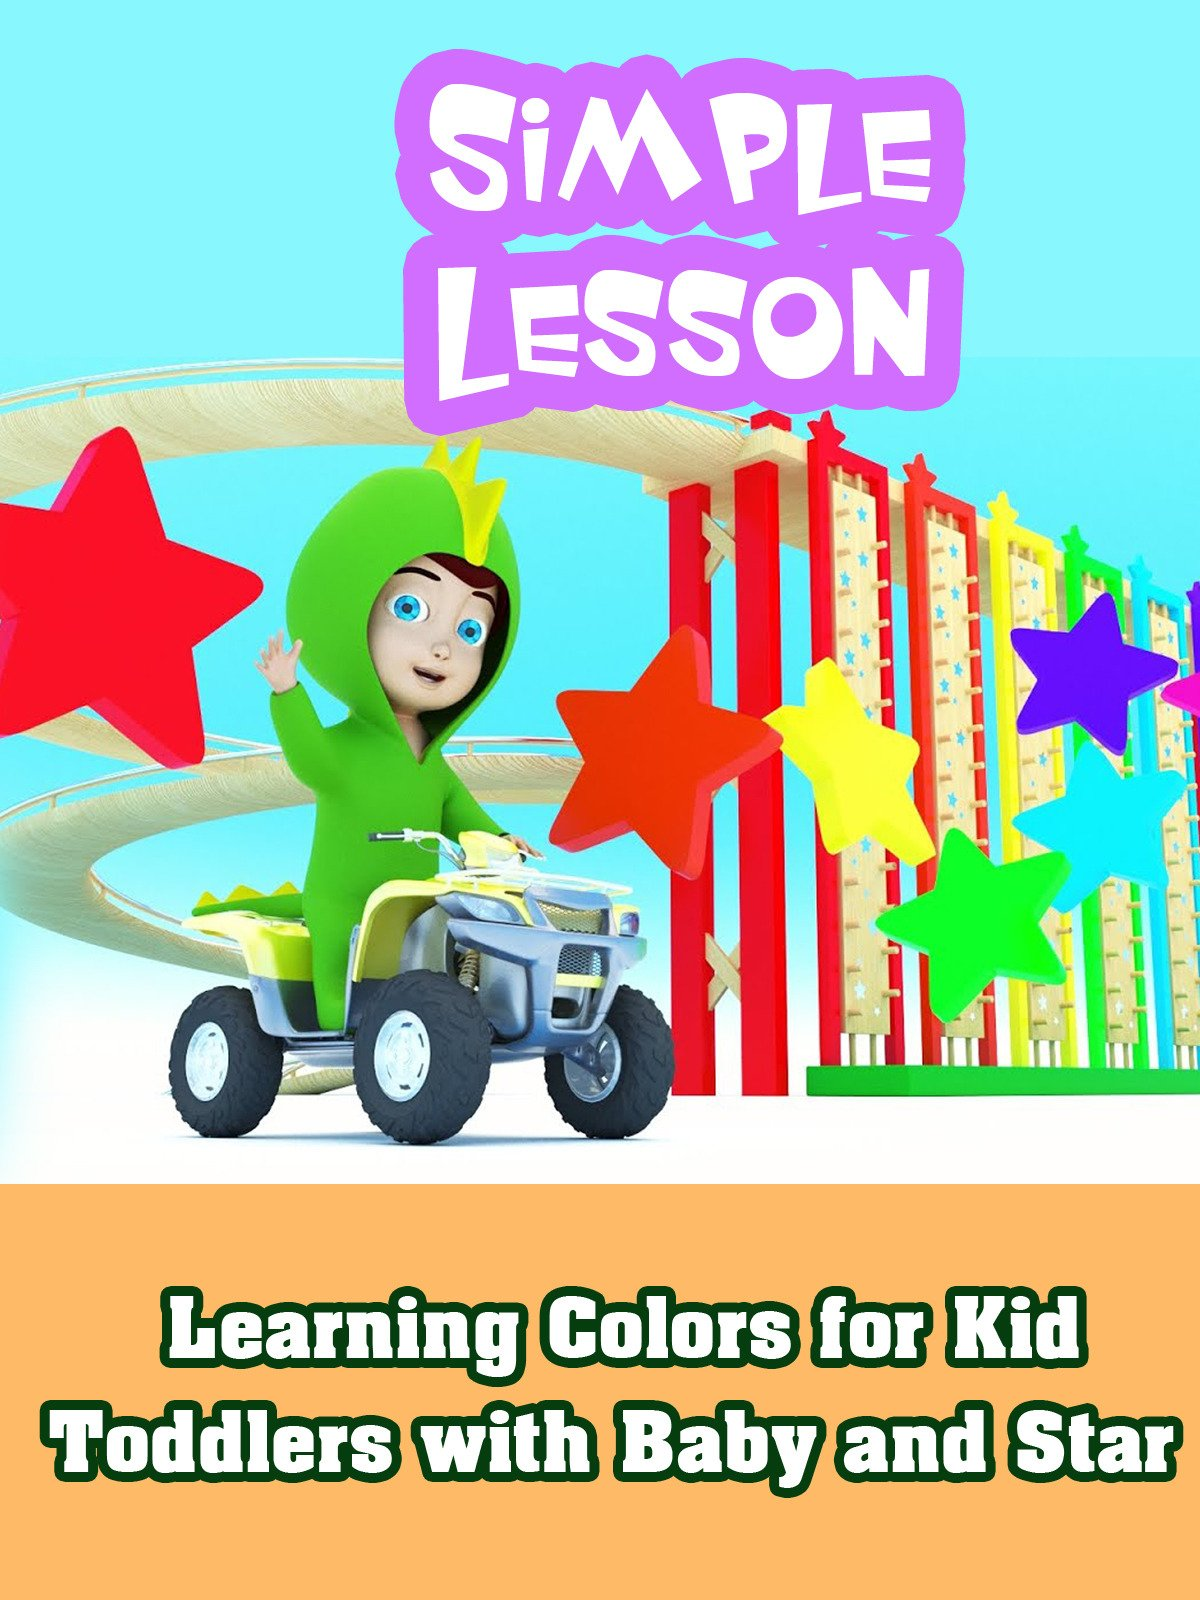 Learning Colors for Kid Toddlers with Baby and Star